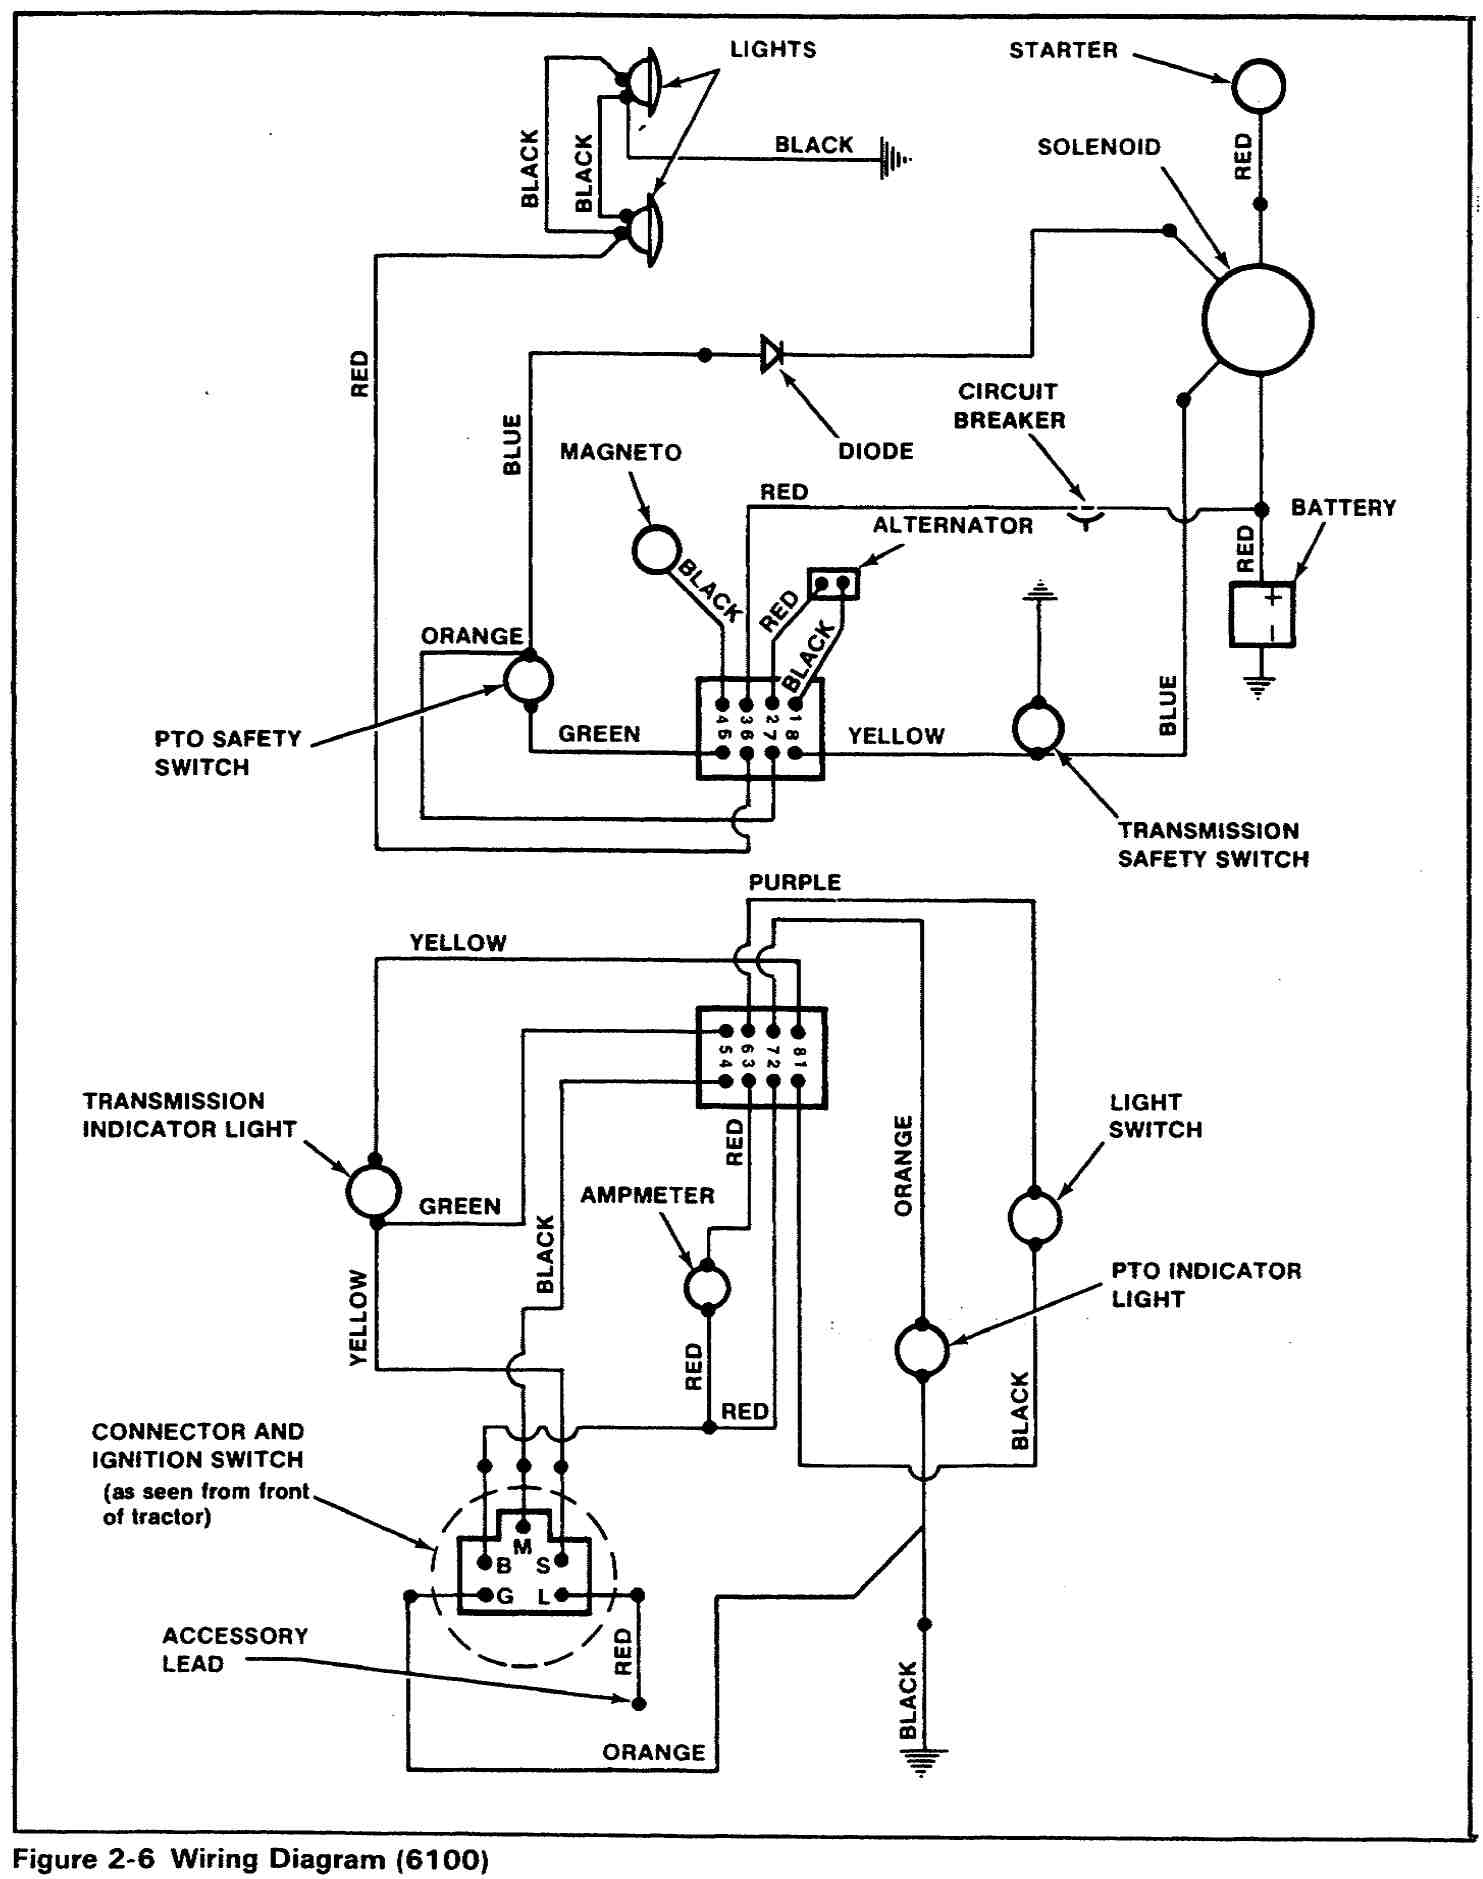 kc hilites wiring harness diagram solidfonts wiring diagram for fog lights relay the